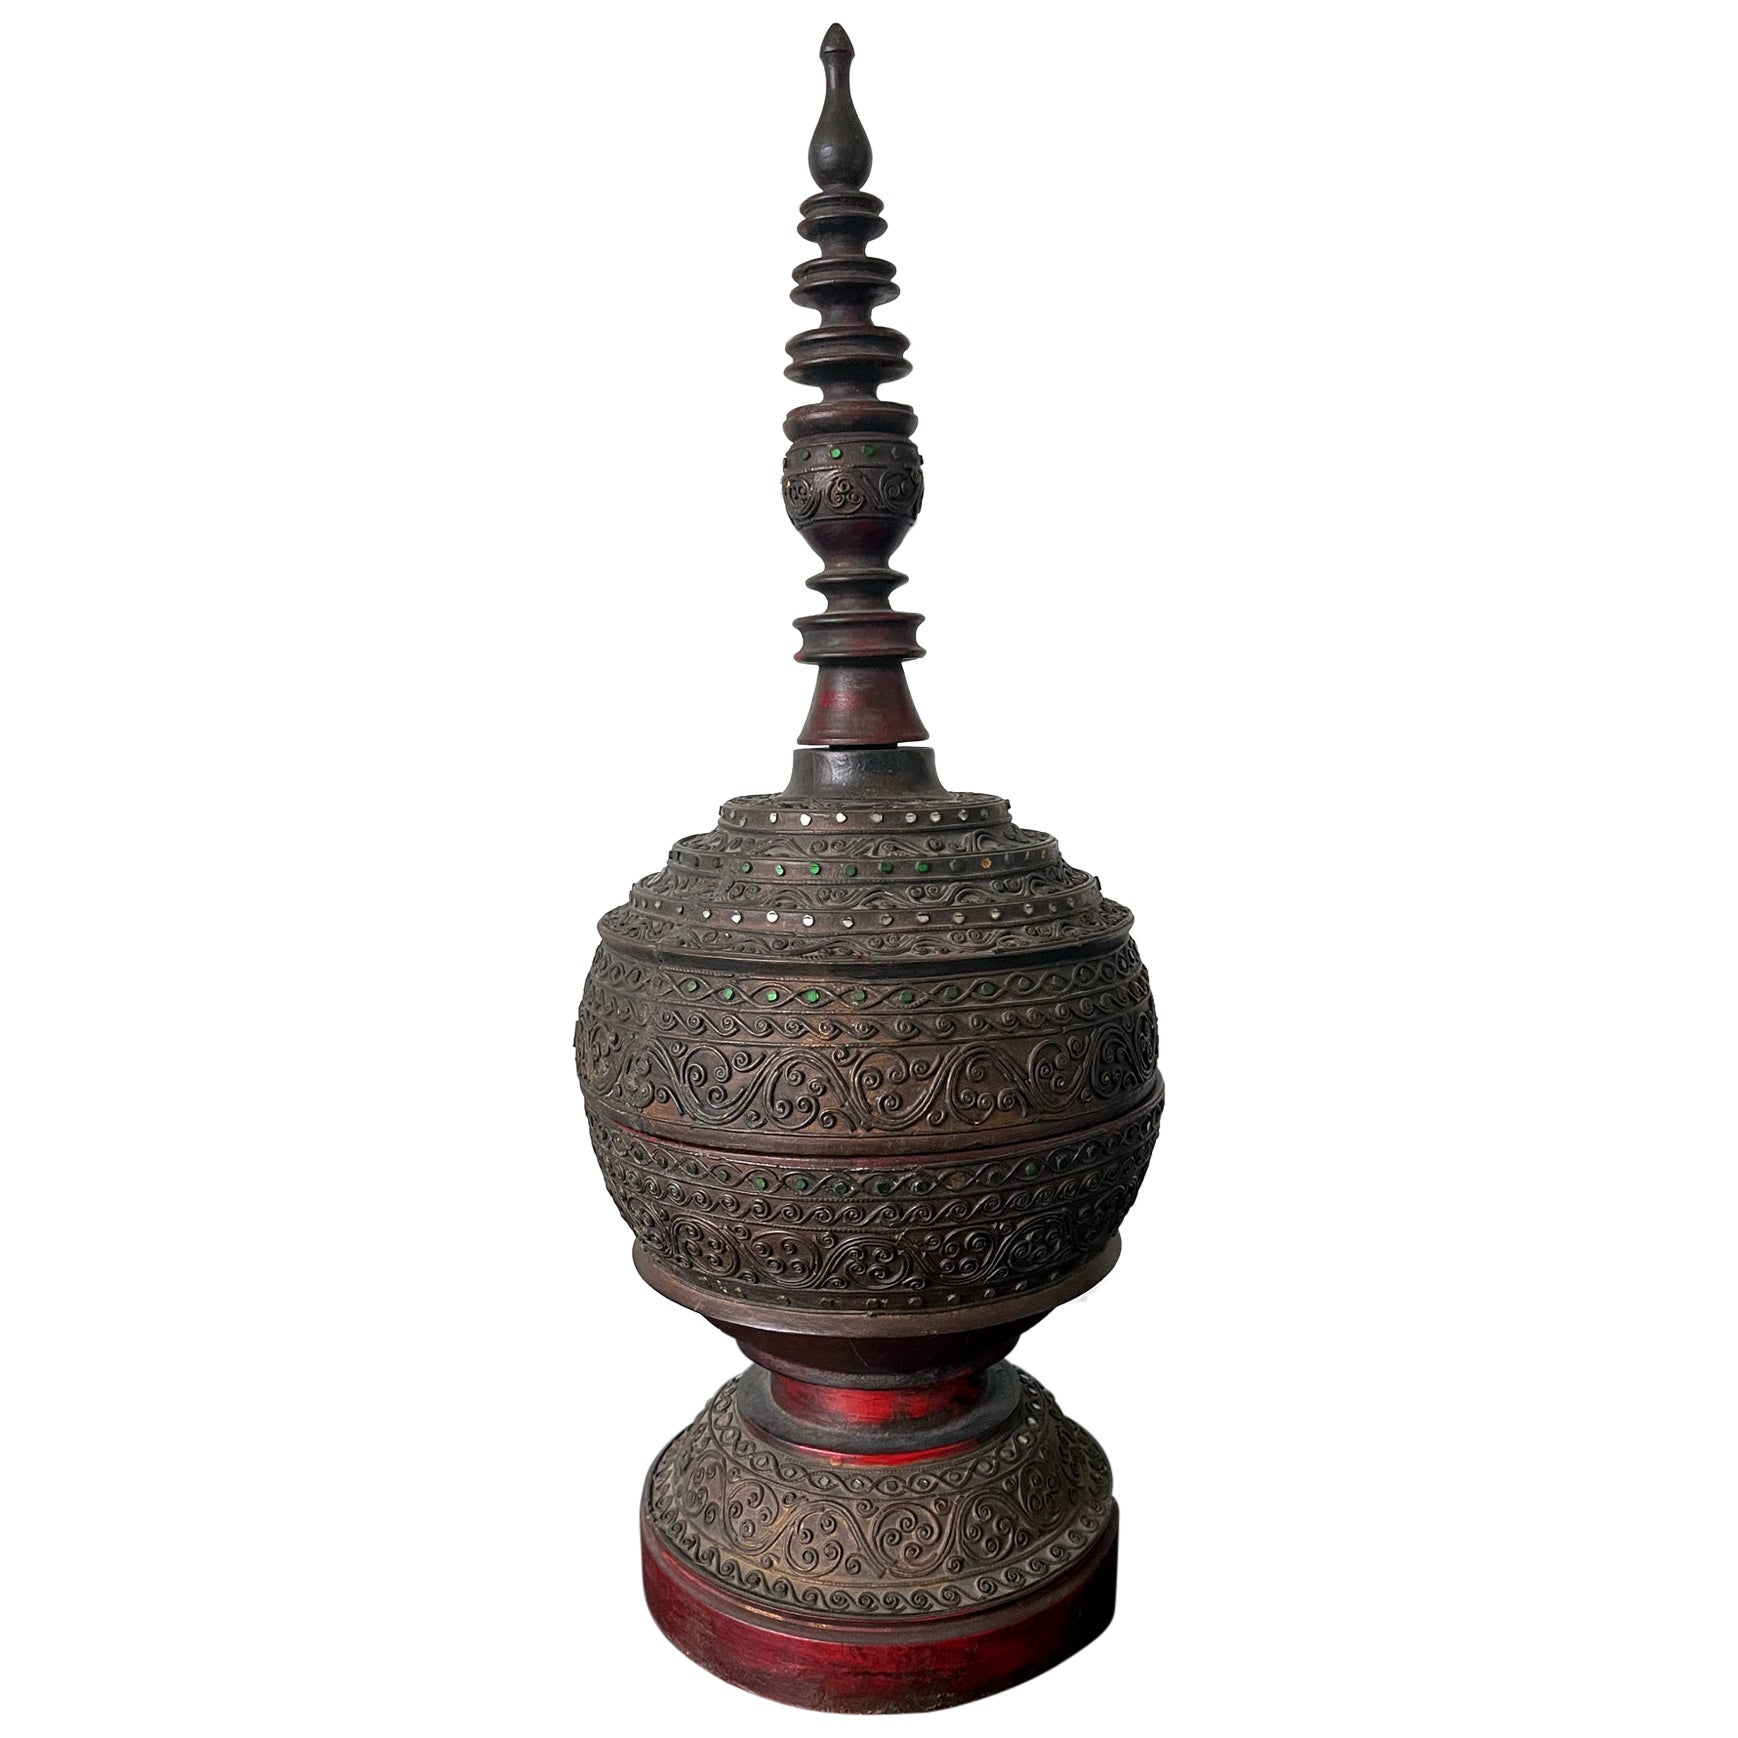 Antique Lacquered Wood Offering Vessel, Thailand